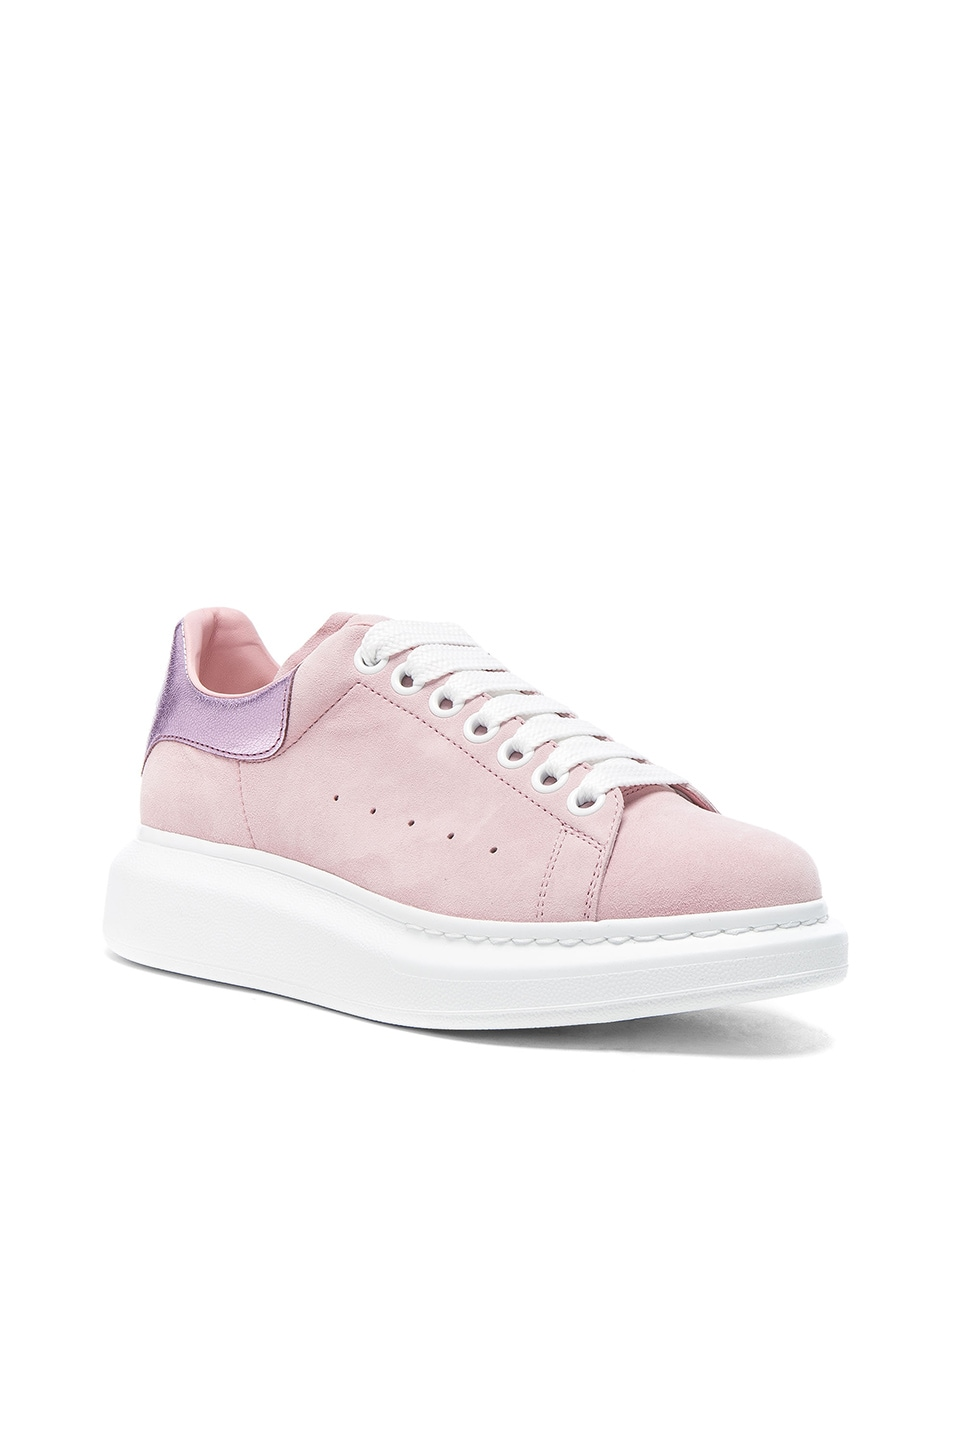 Image 2 of Alexander McQueen Suede Platform Lace Up Sneakers in Clover & Pale Pink